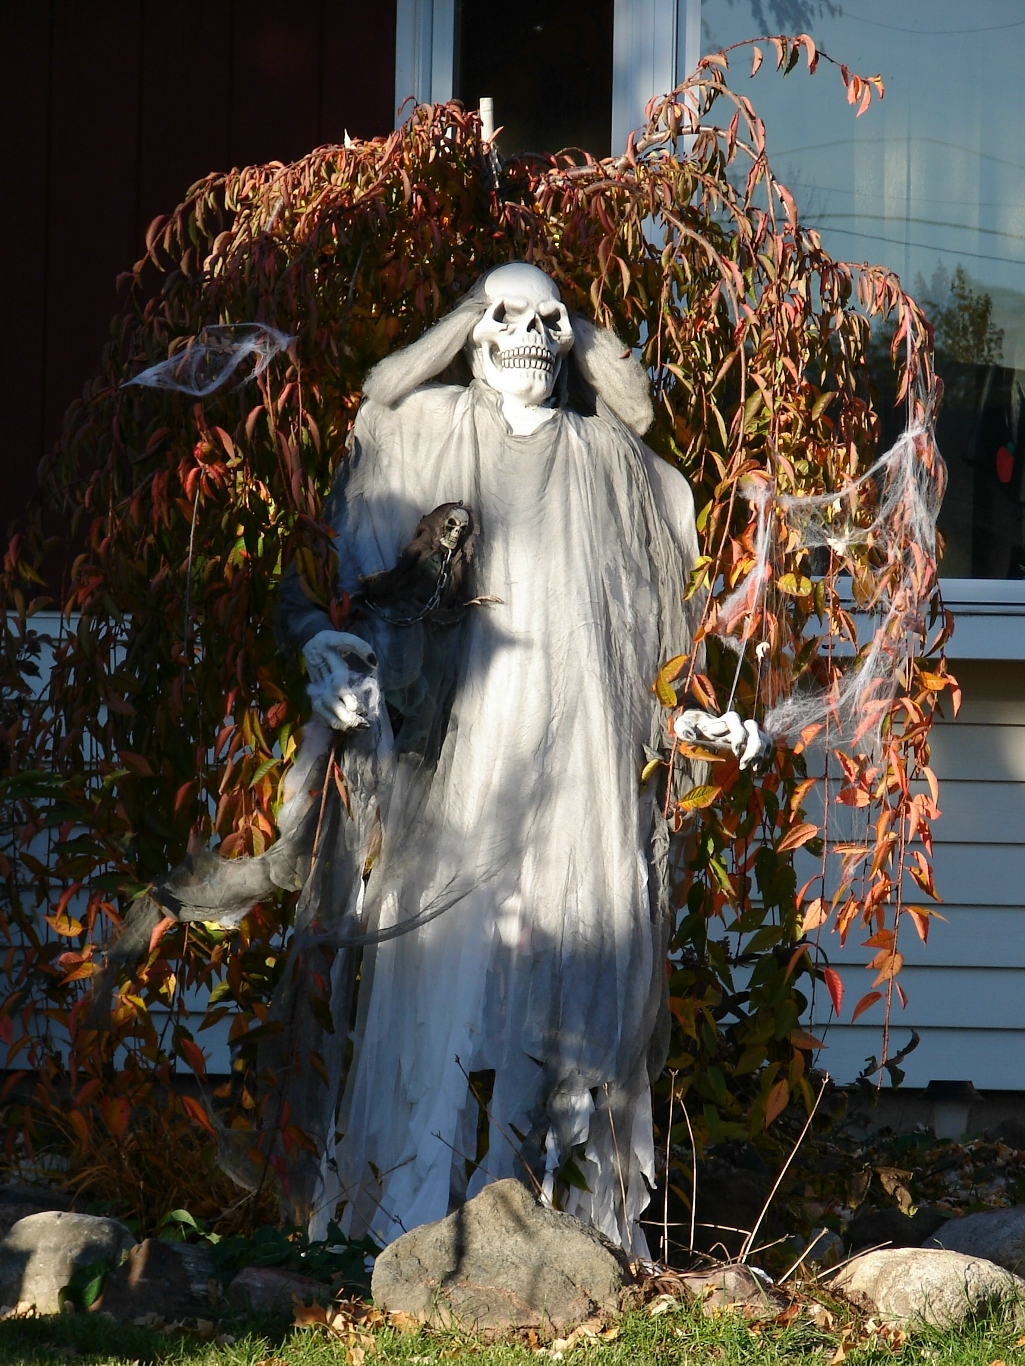 Outdoor halloween decorations ideas to stand out - Faire des decorations d halloween ...